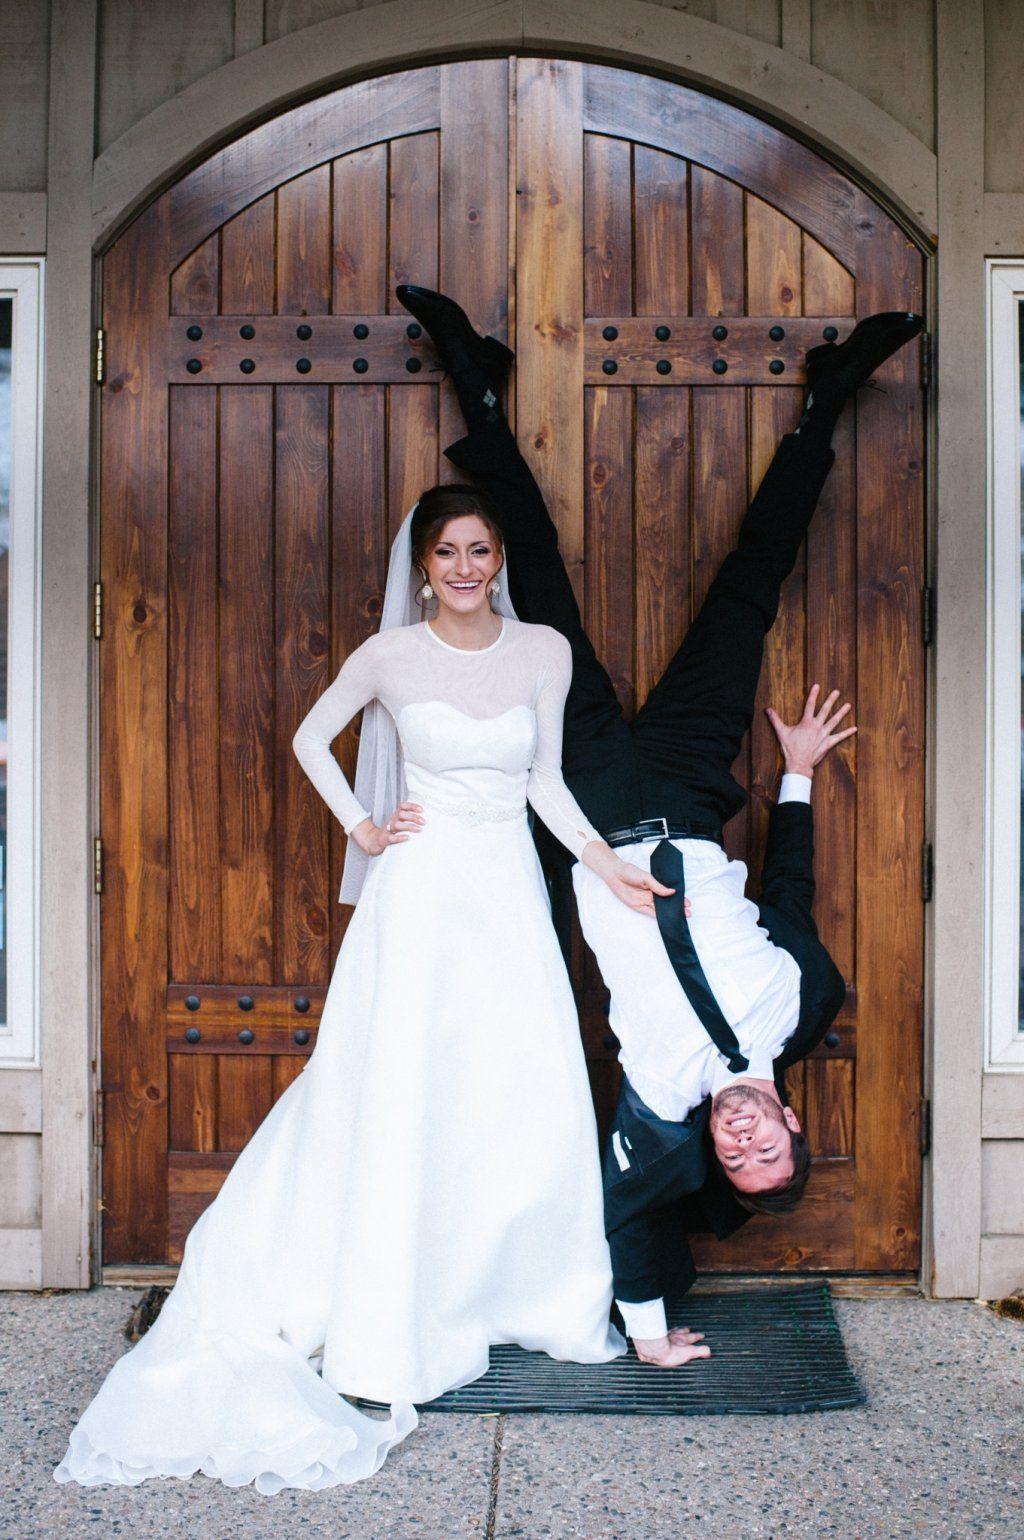 2019 where to Sell Wedding Dress - How to Dress for A Wedding Check ...